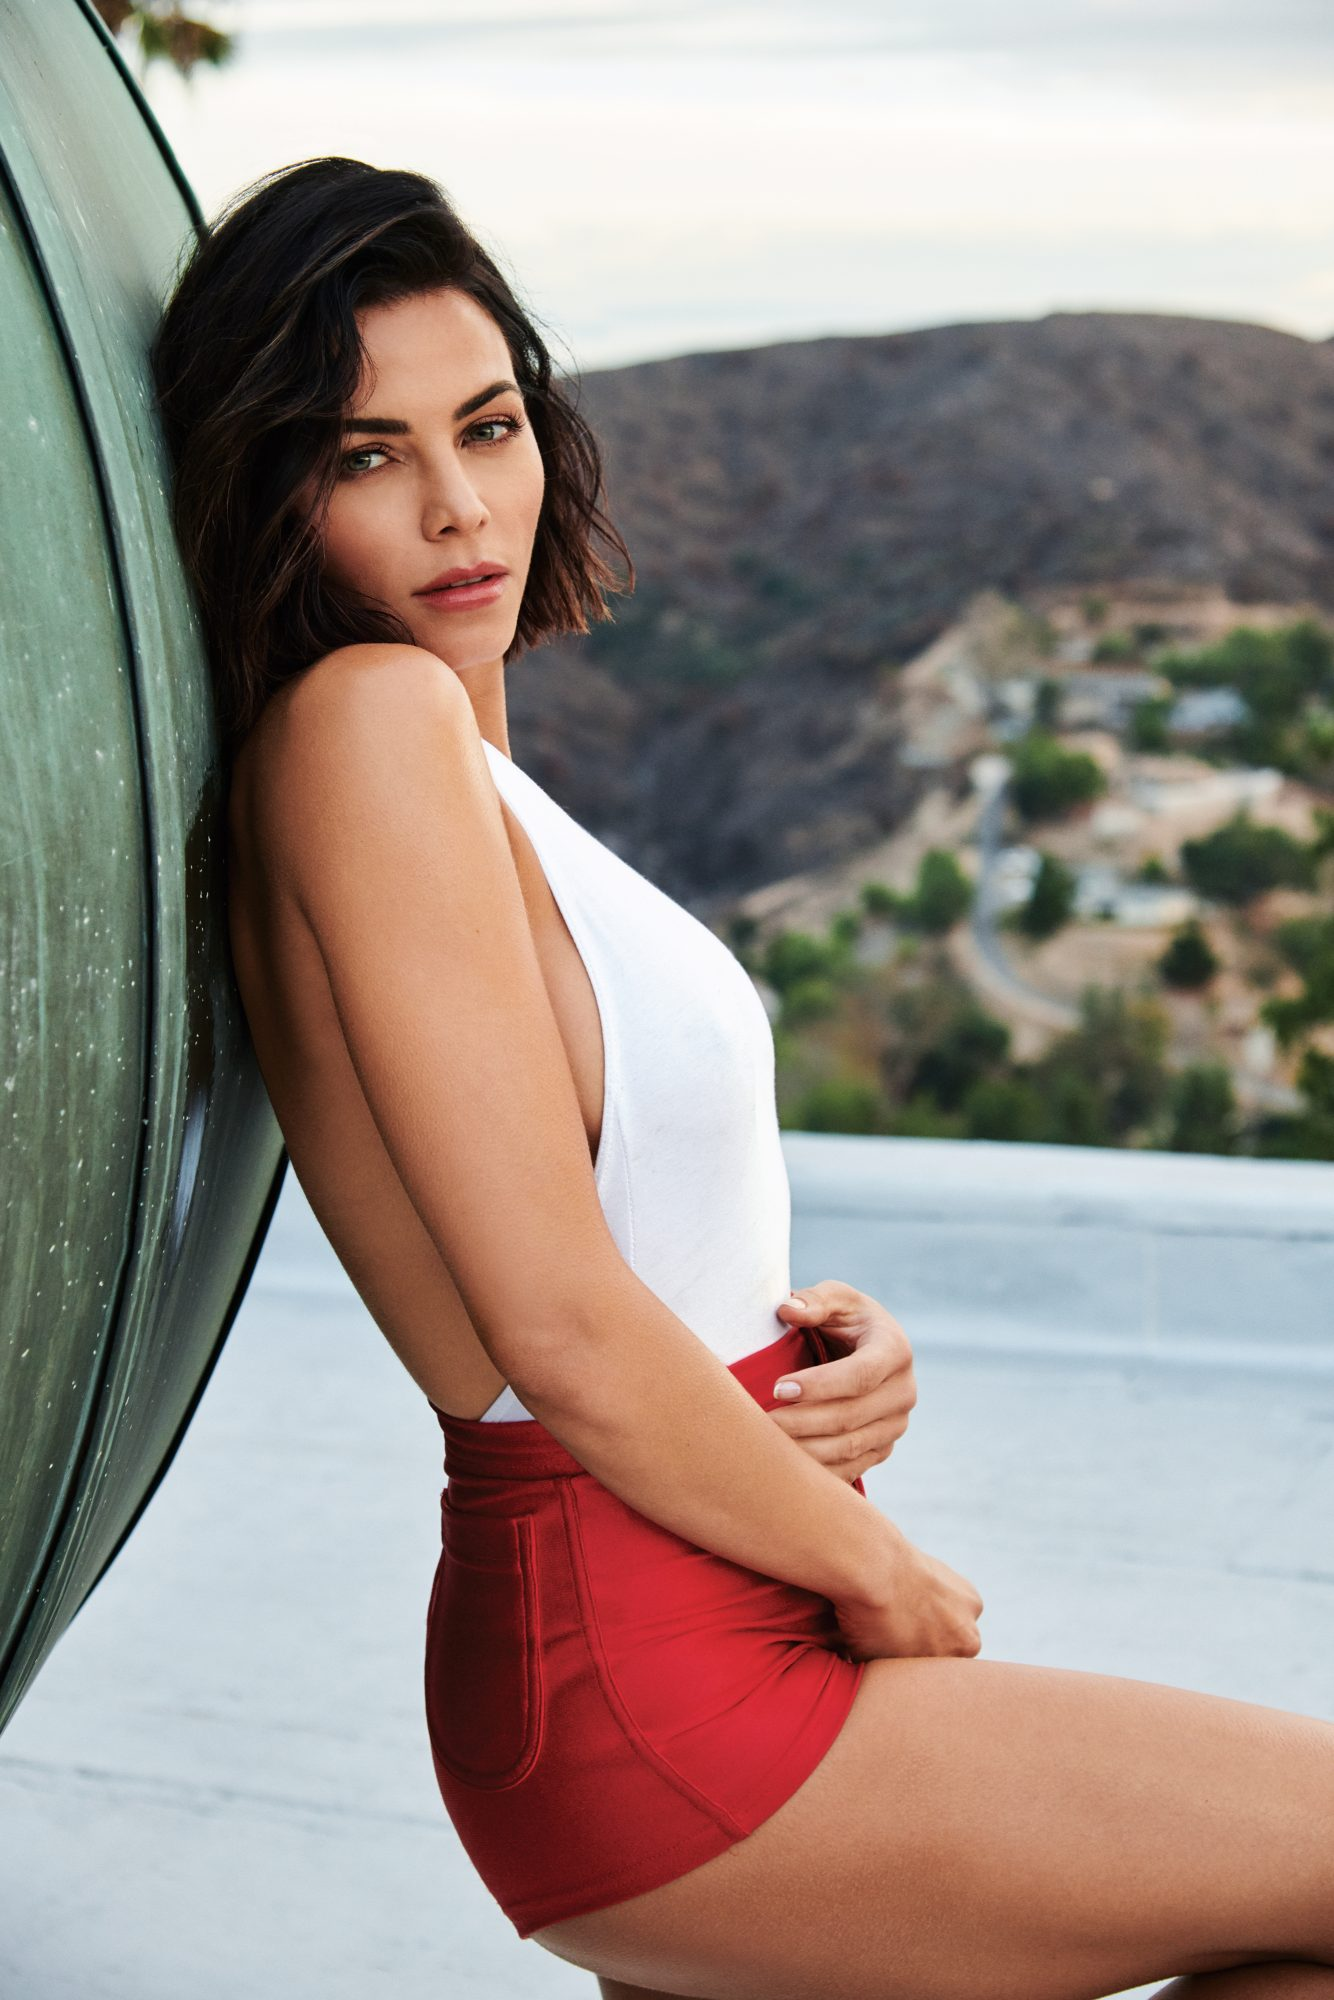 jenna dewan tatum march cover side view red high waisted shorts